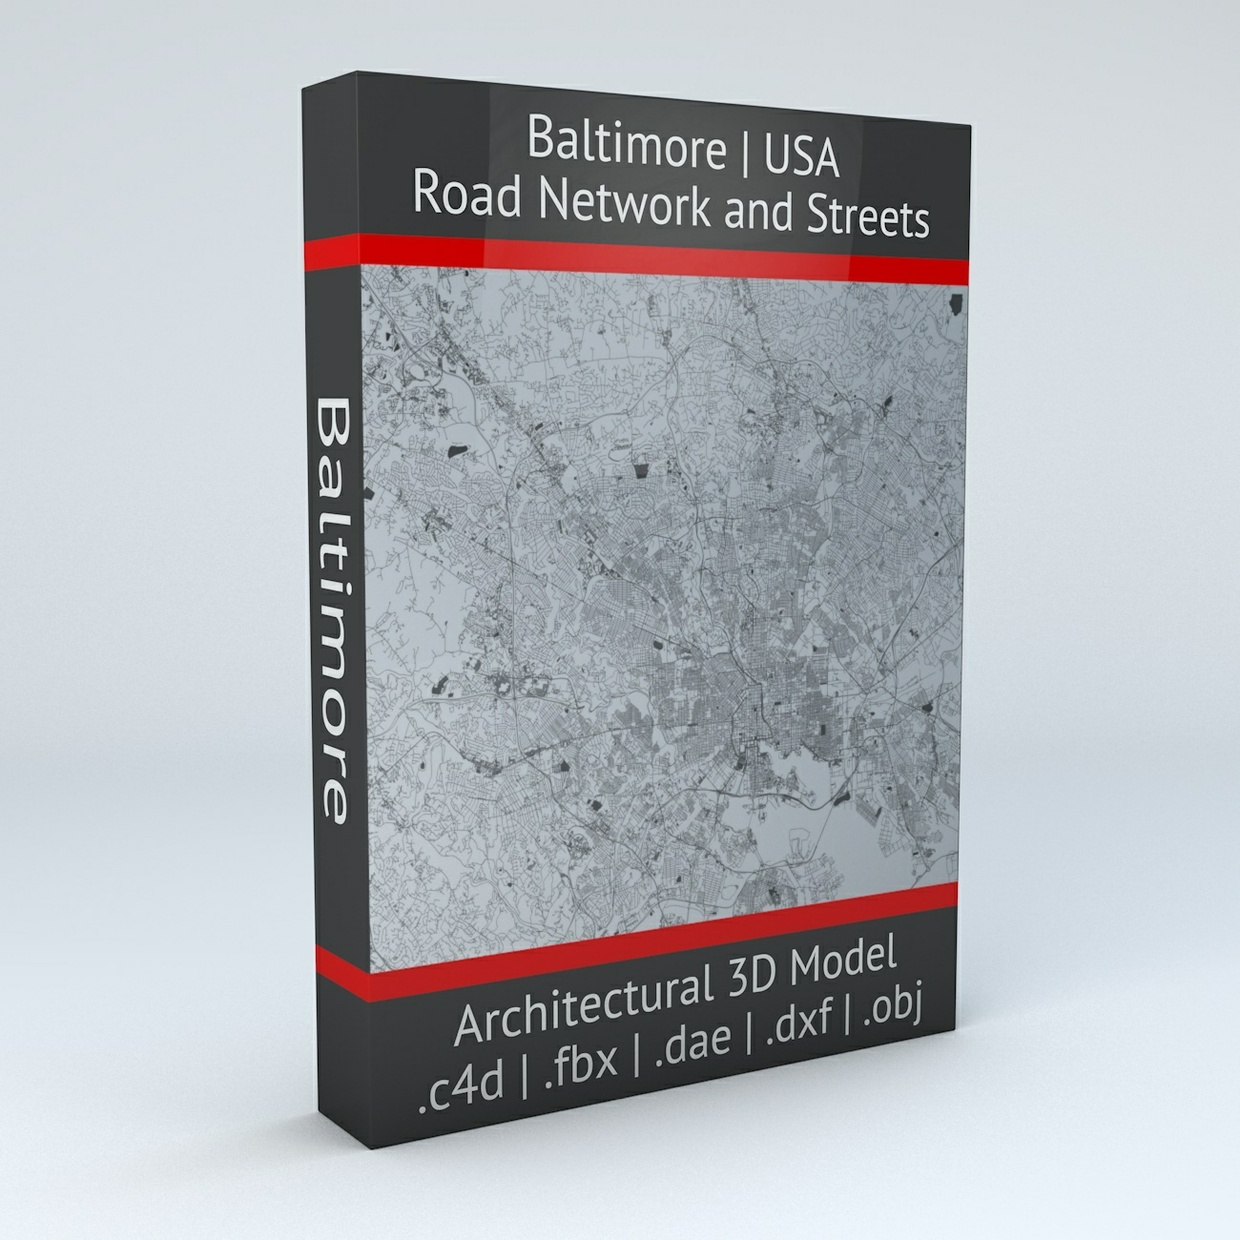 Baltimore Road Network and Streets Architectural 3D Model